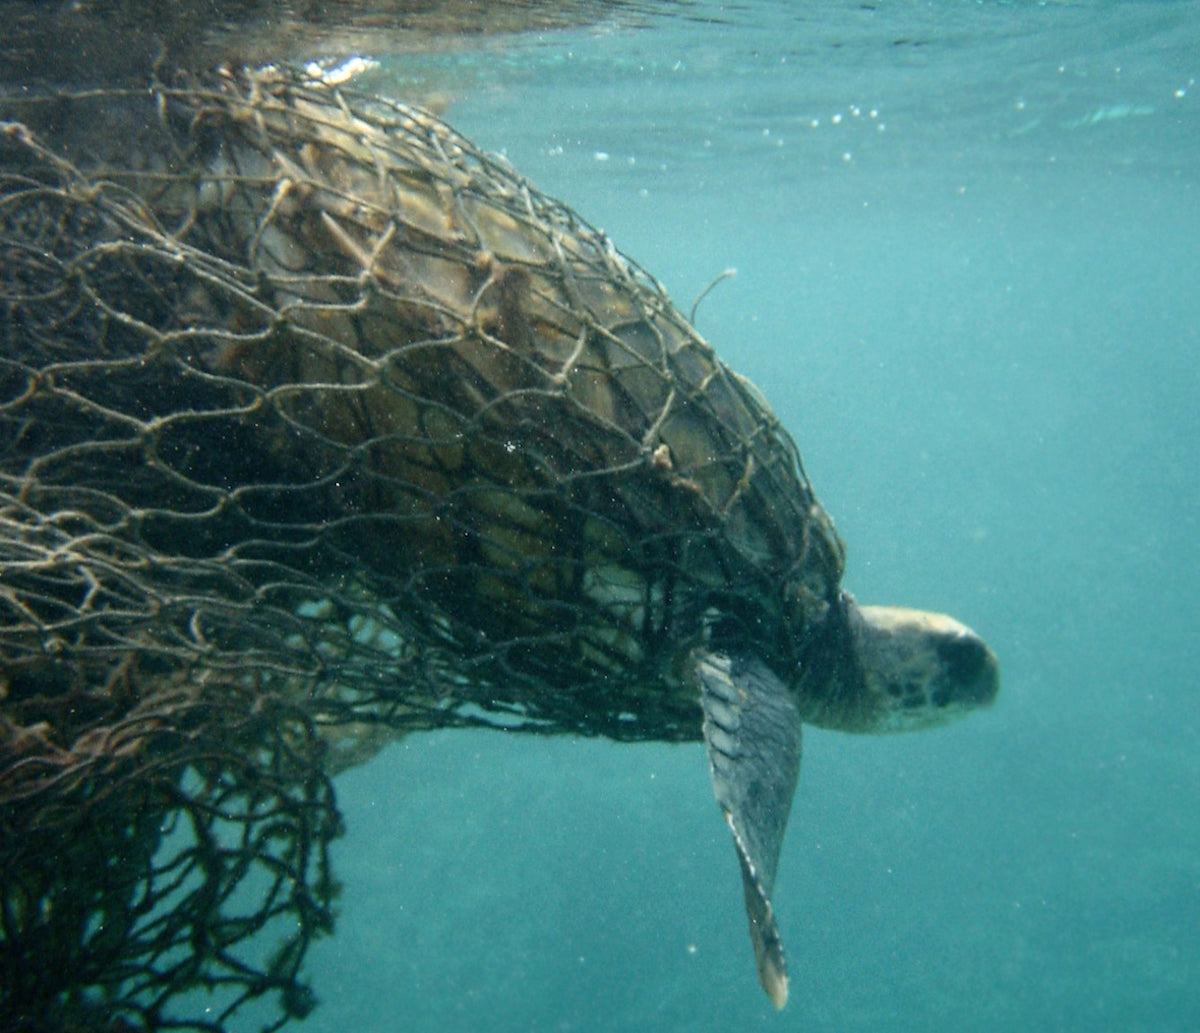 Sea Turtle Caught in Net Pollution